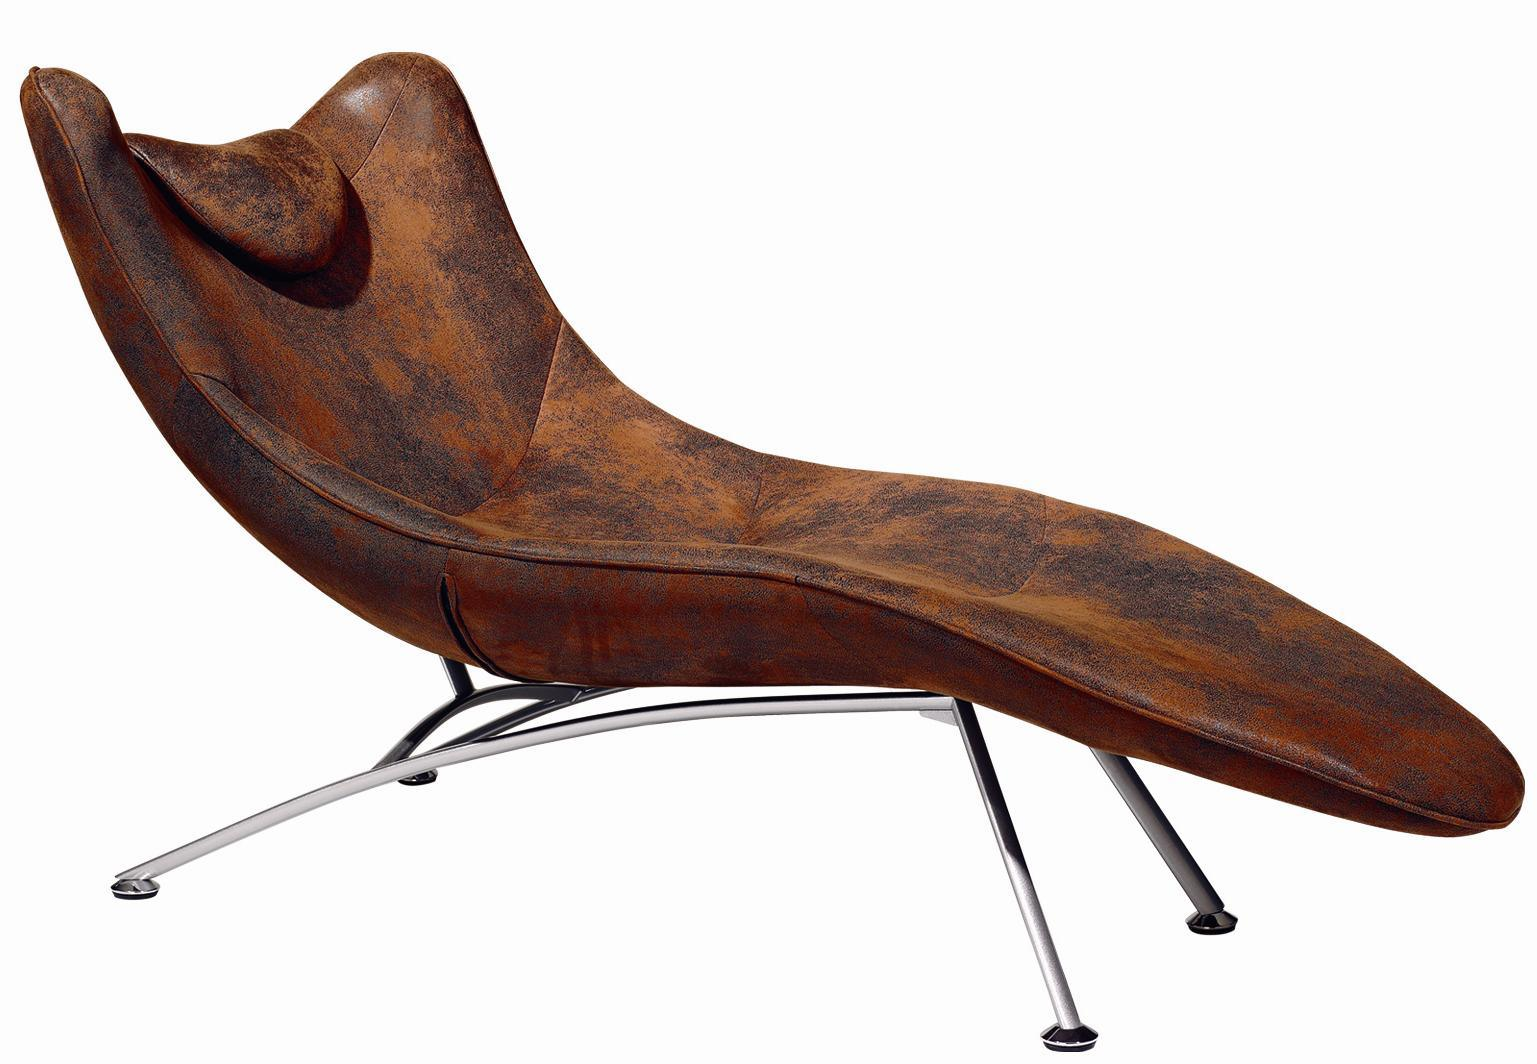 China chaise lounge hh4 he0080 china modern chair for Chaise leather lounges